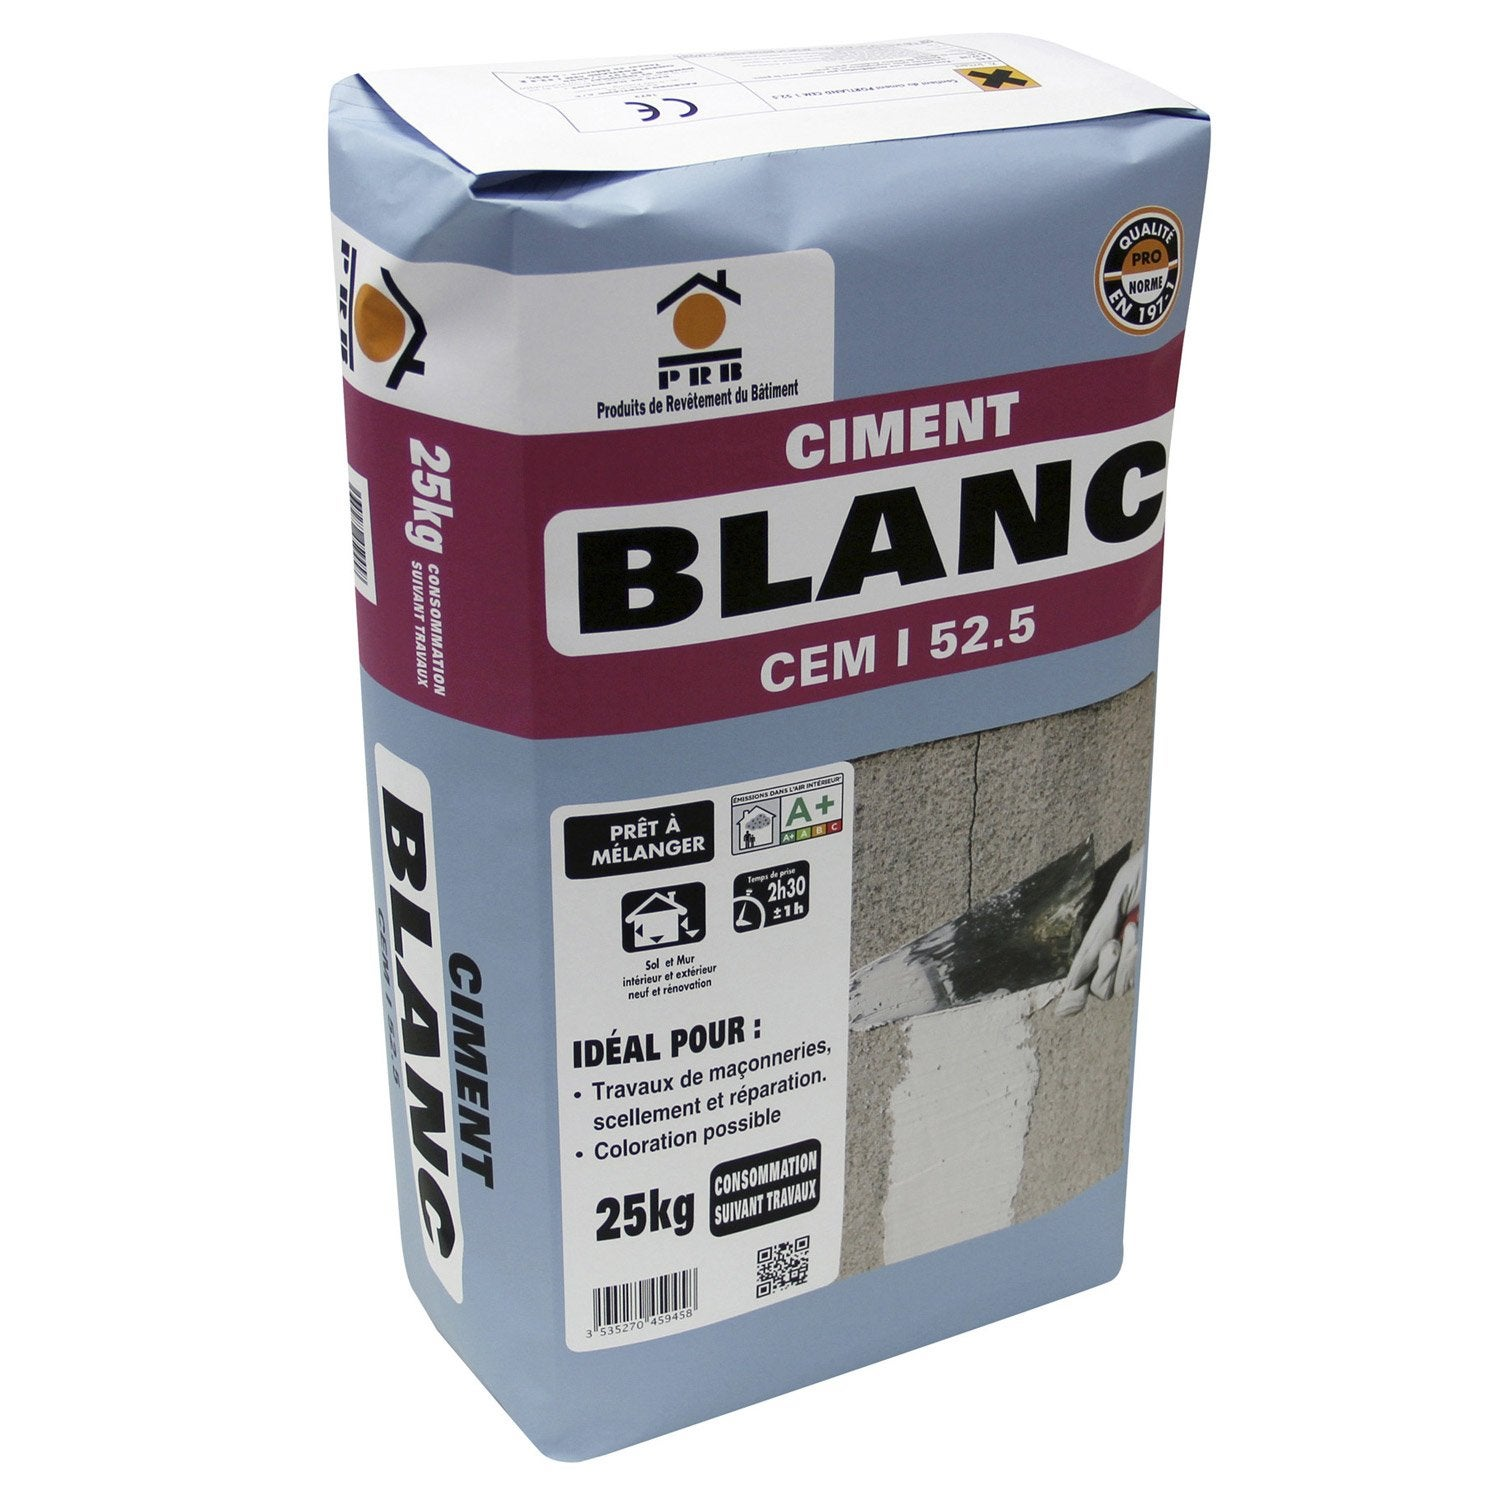 Ciment blanc ce prb 25 kg leroy merlin - Ciment colle leroy merlin ...